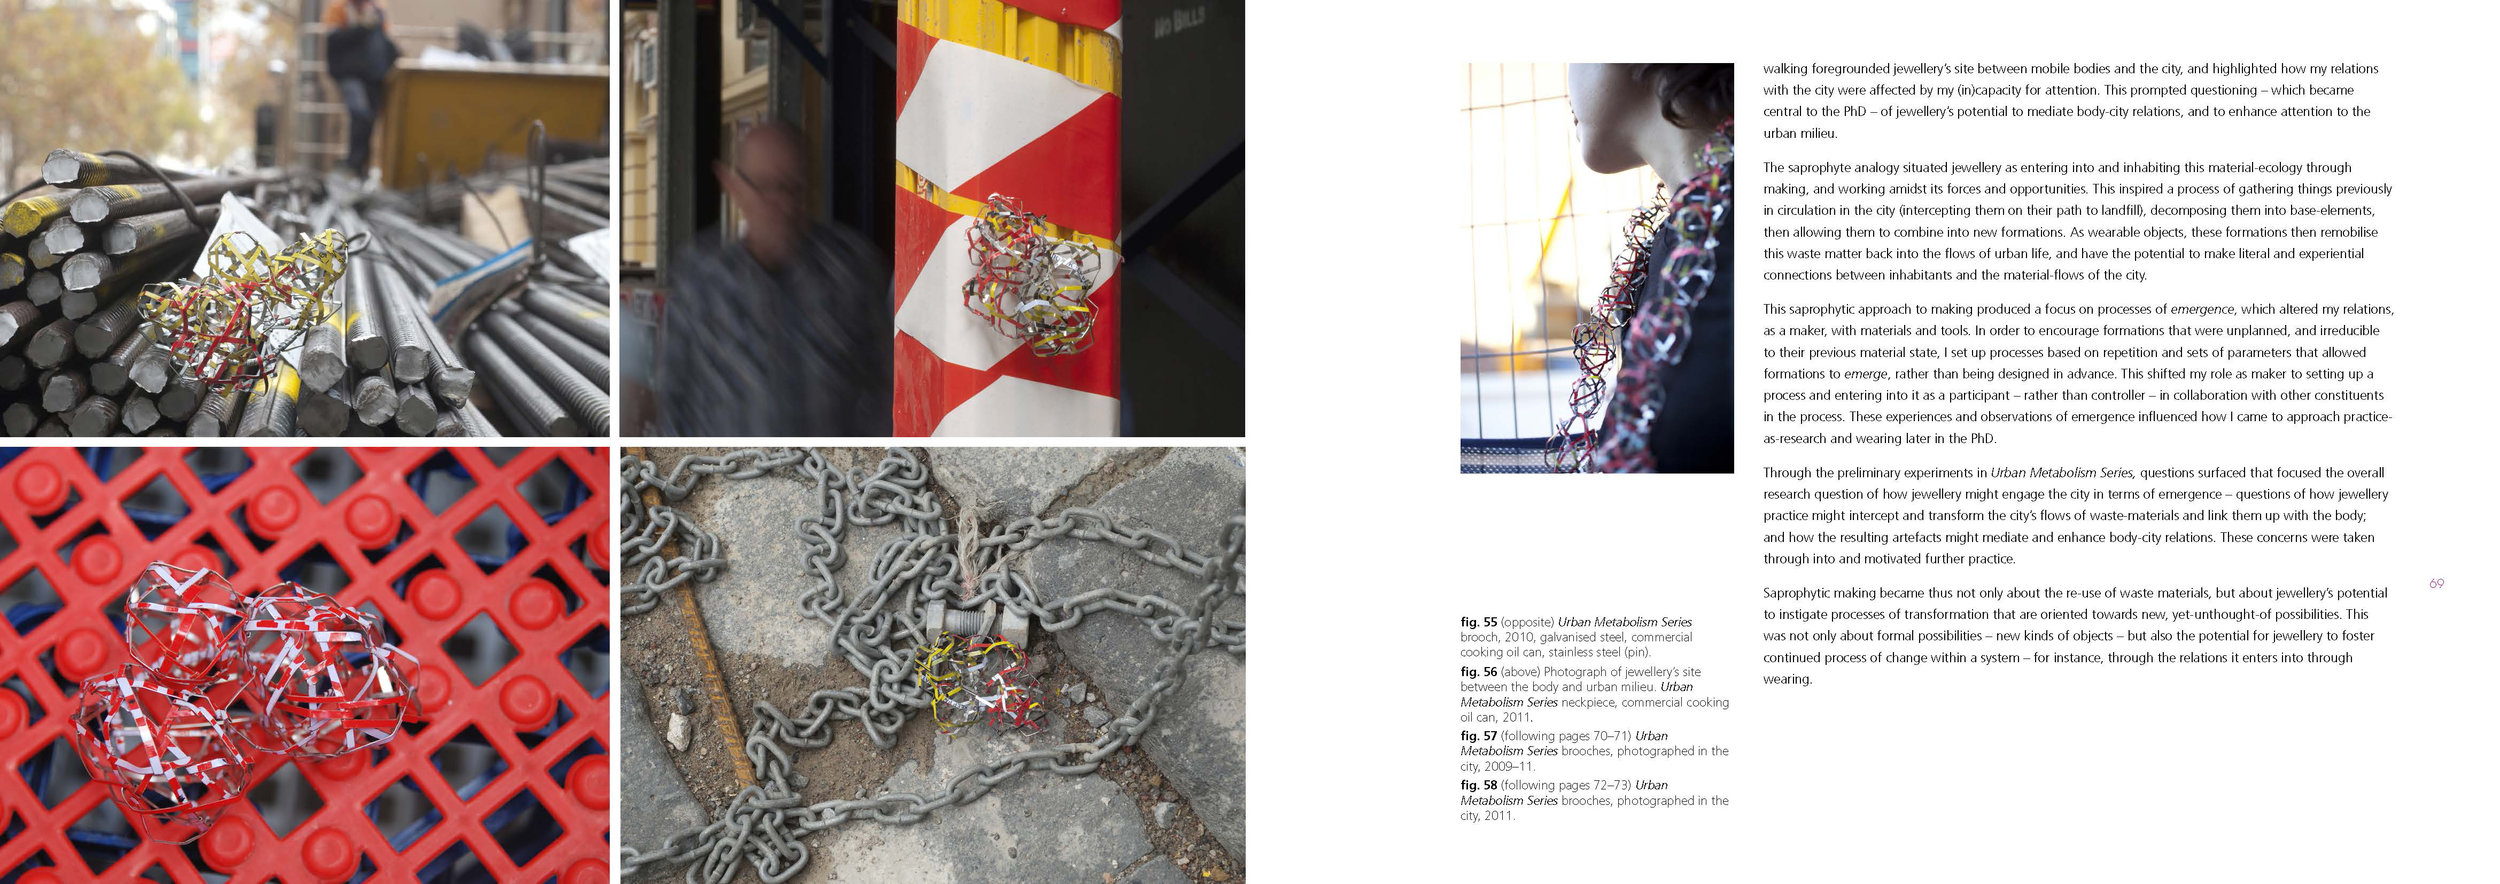 Jacqui Chan_jewellery in the urban milieu_part 1_intro + project milieu 01_Page_79.jpg